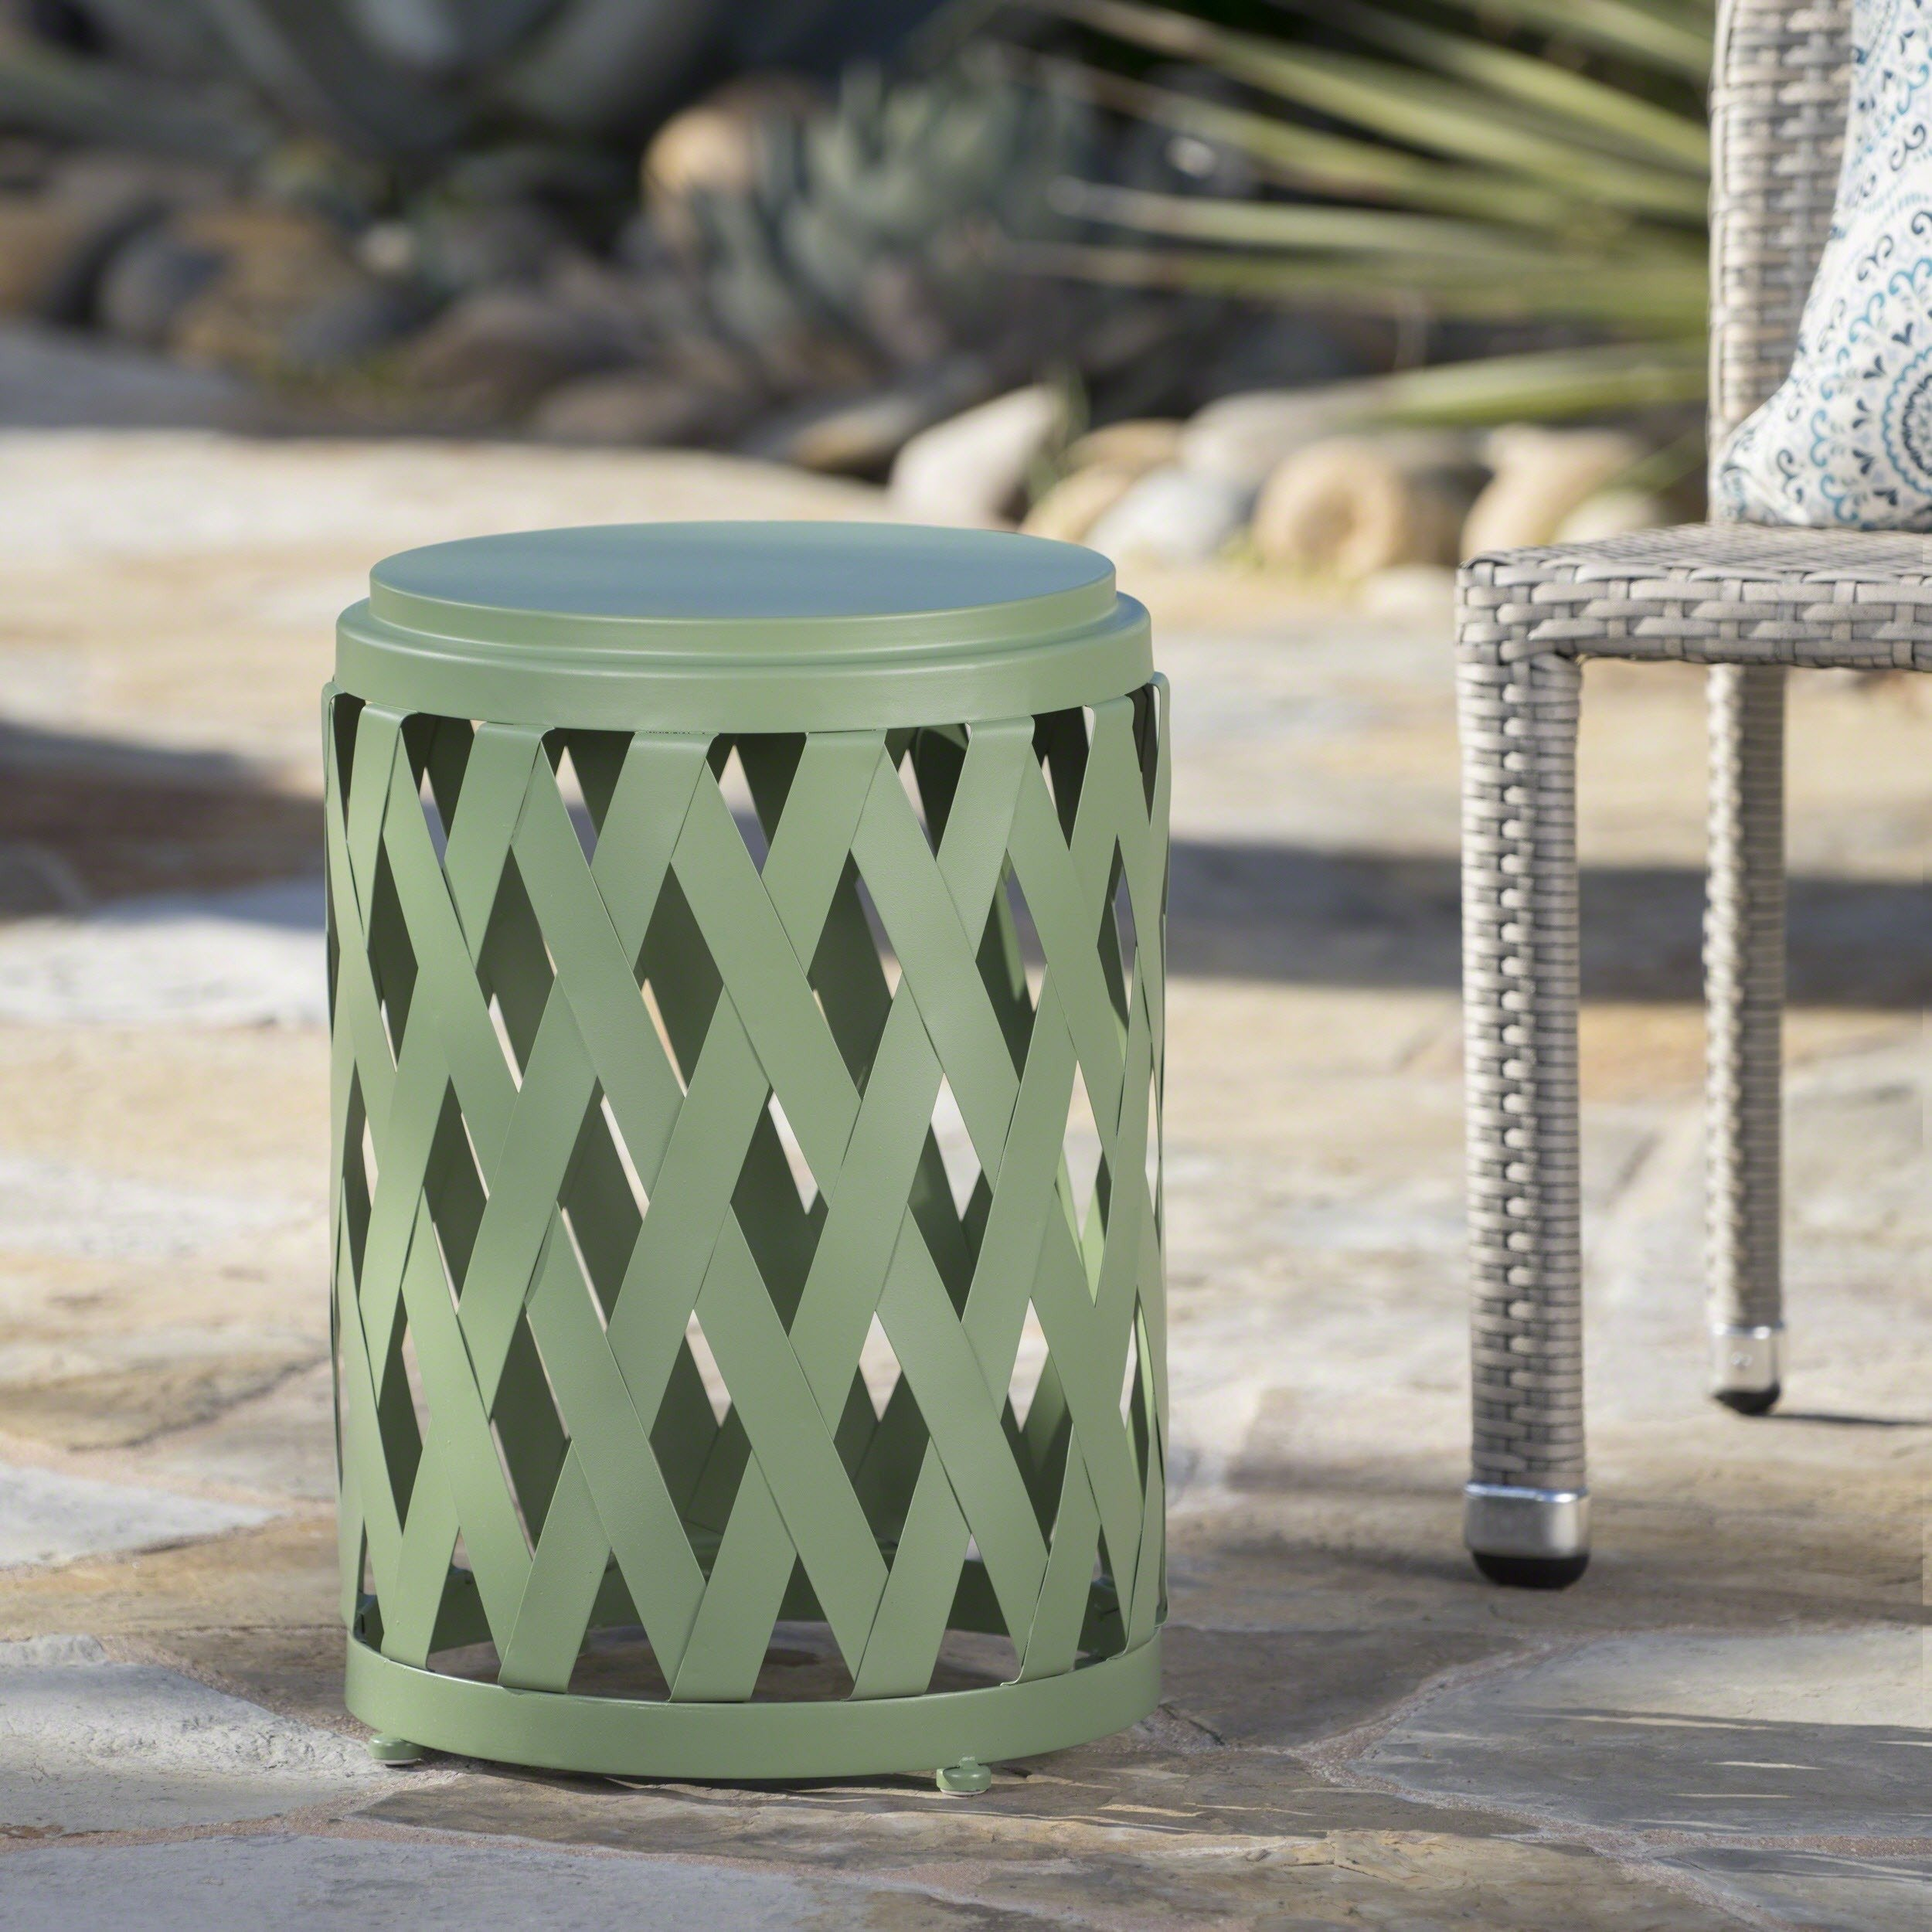 selen outdoor inch lattice side table christopher knight home green free shipping orders over small student desk bar height legs wood high accent reclaimed barn door antique end